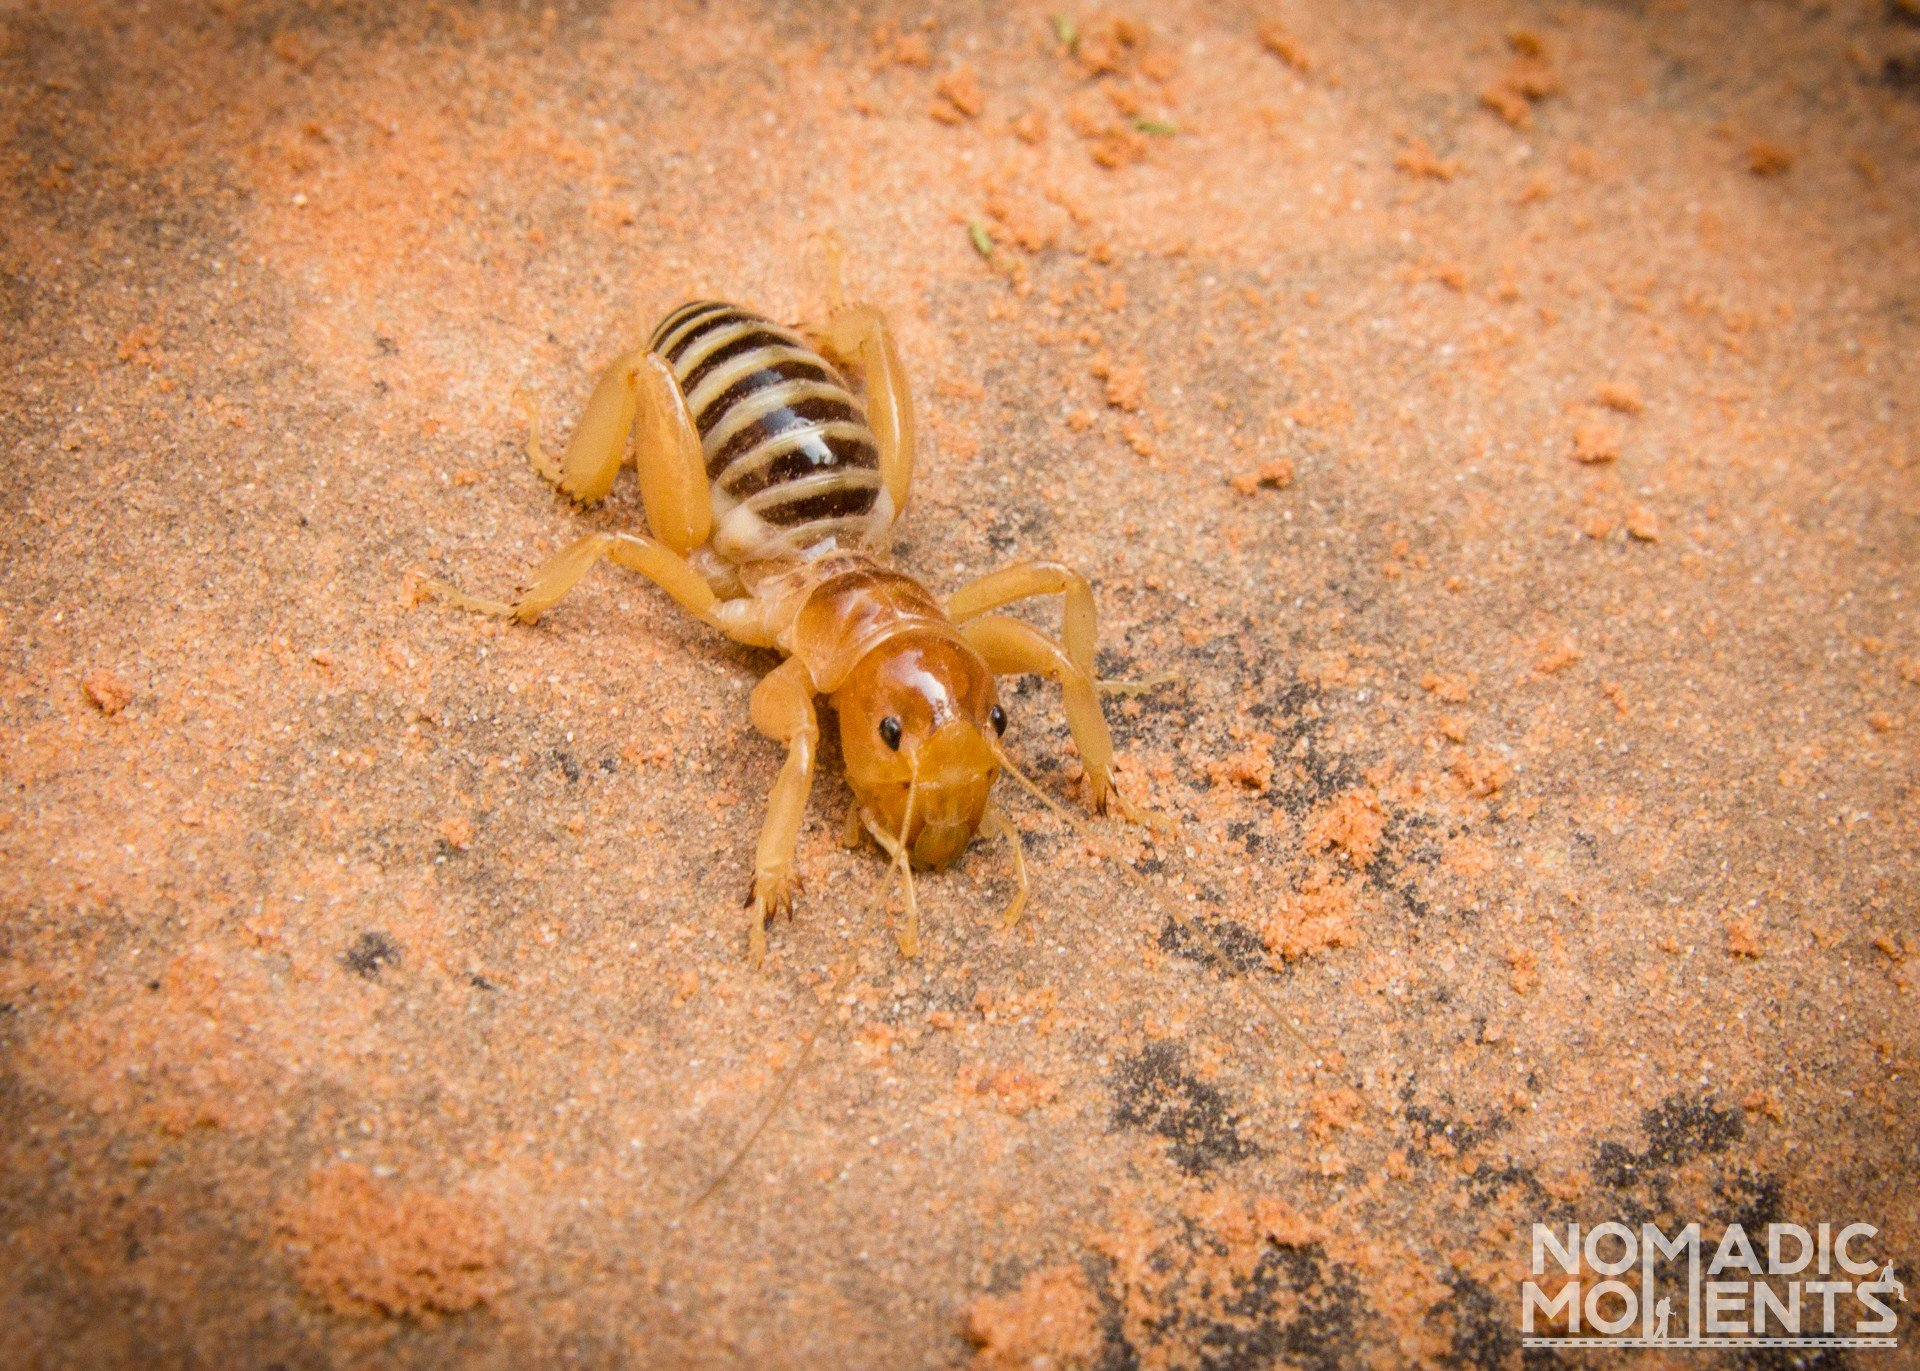 A Jerusalem Cricket